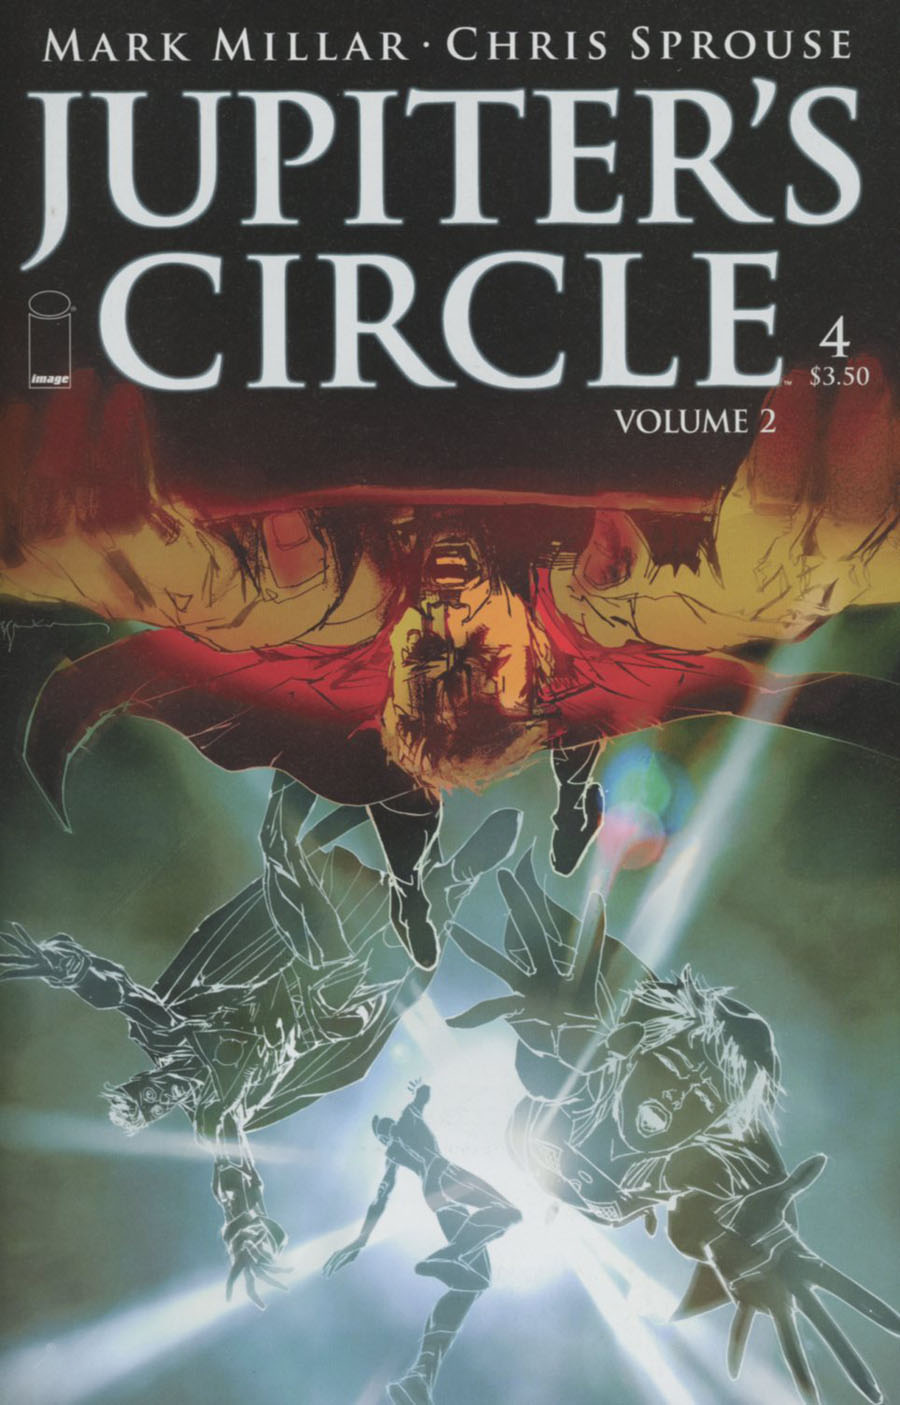 Jupiters Circle Vol 2 #4 Cover A Bill Sienkiewicz